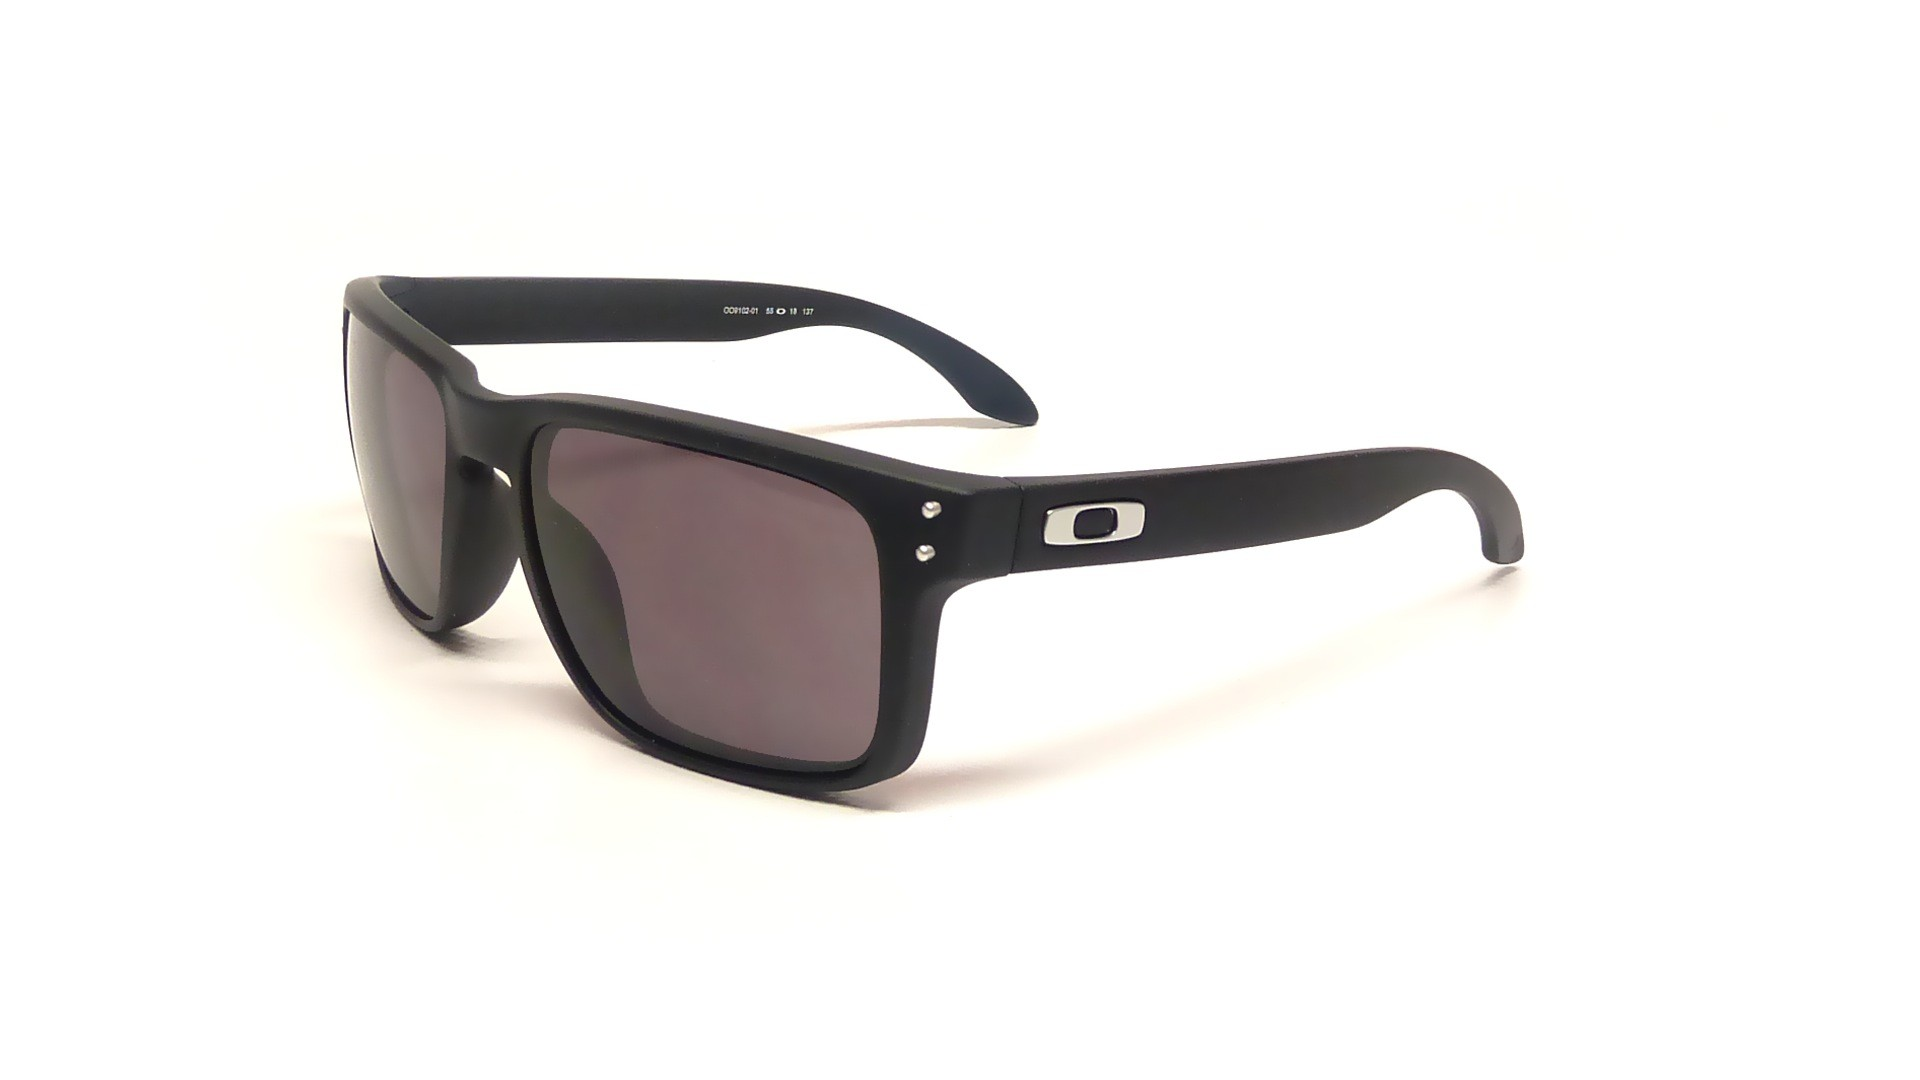 f6d5352876e Sunglasses Oakley Holbrook Black Matte OO9102 01 55-18 Medium